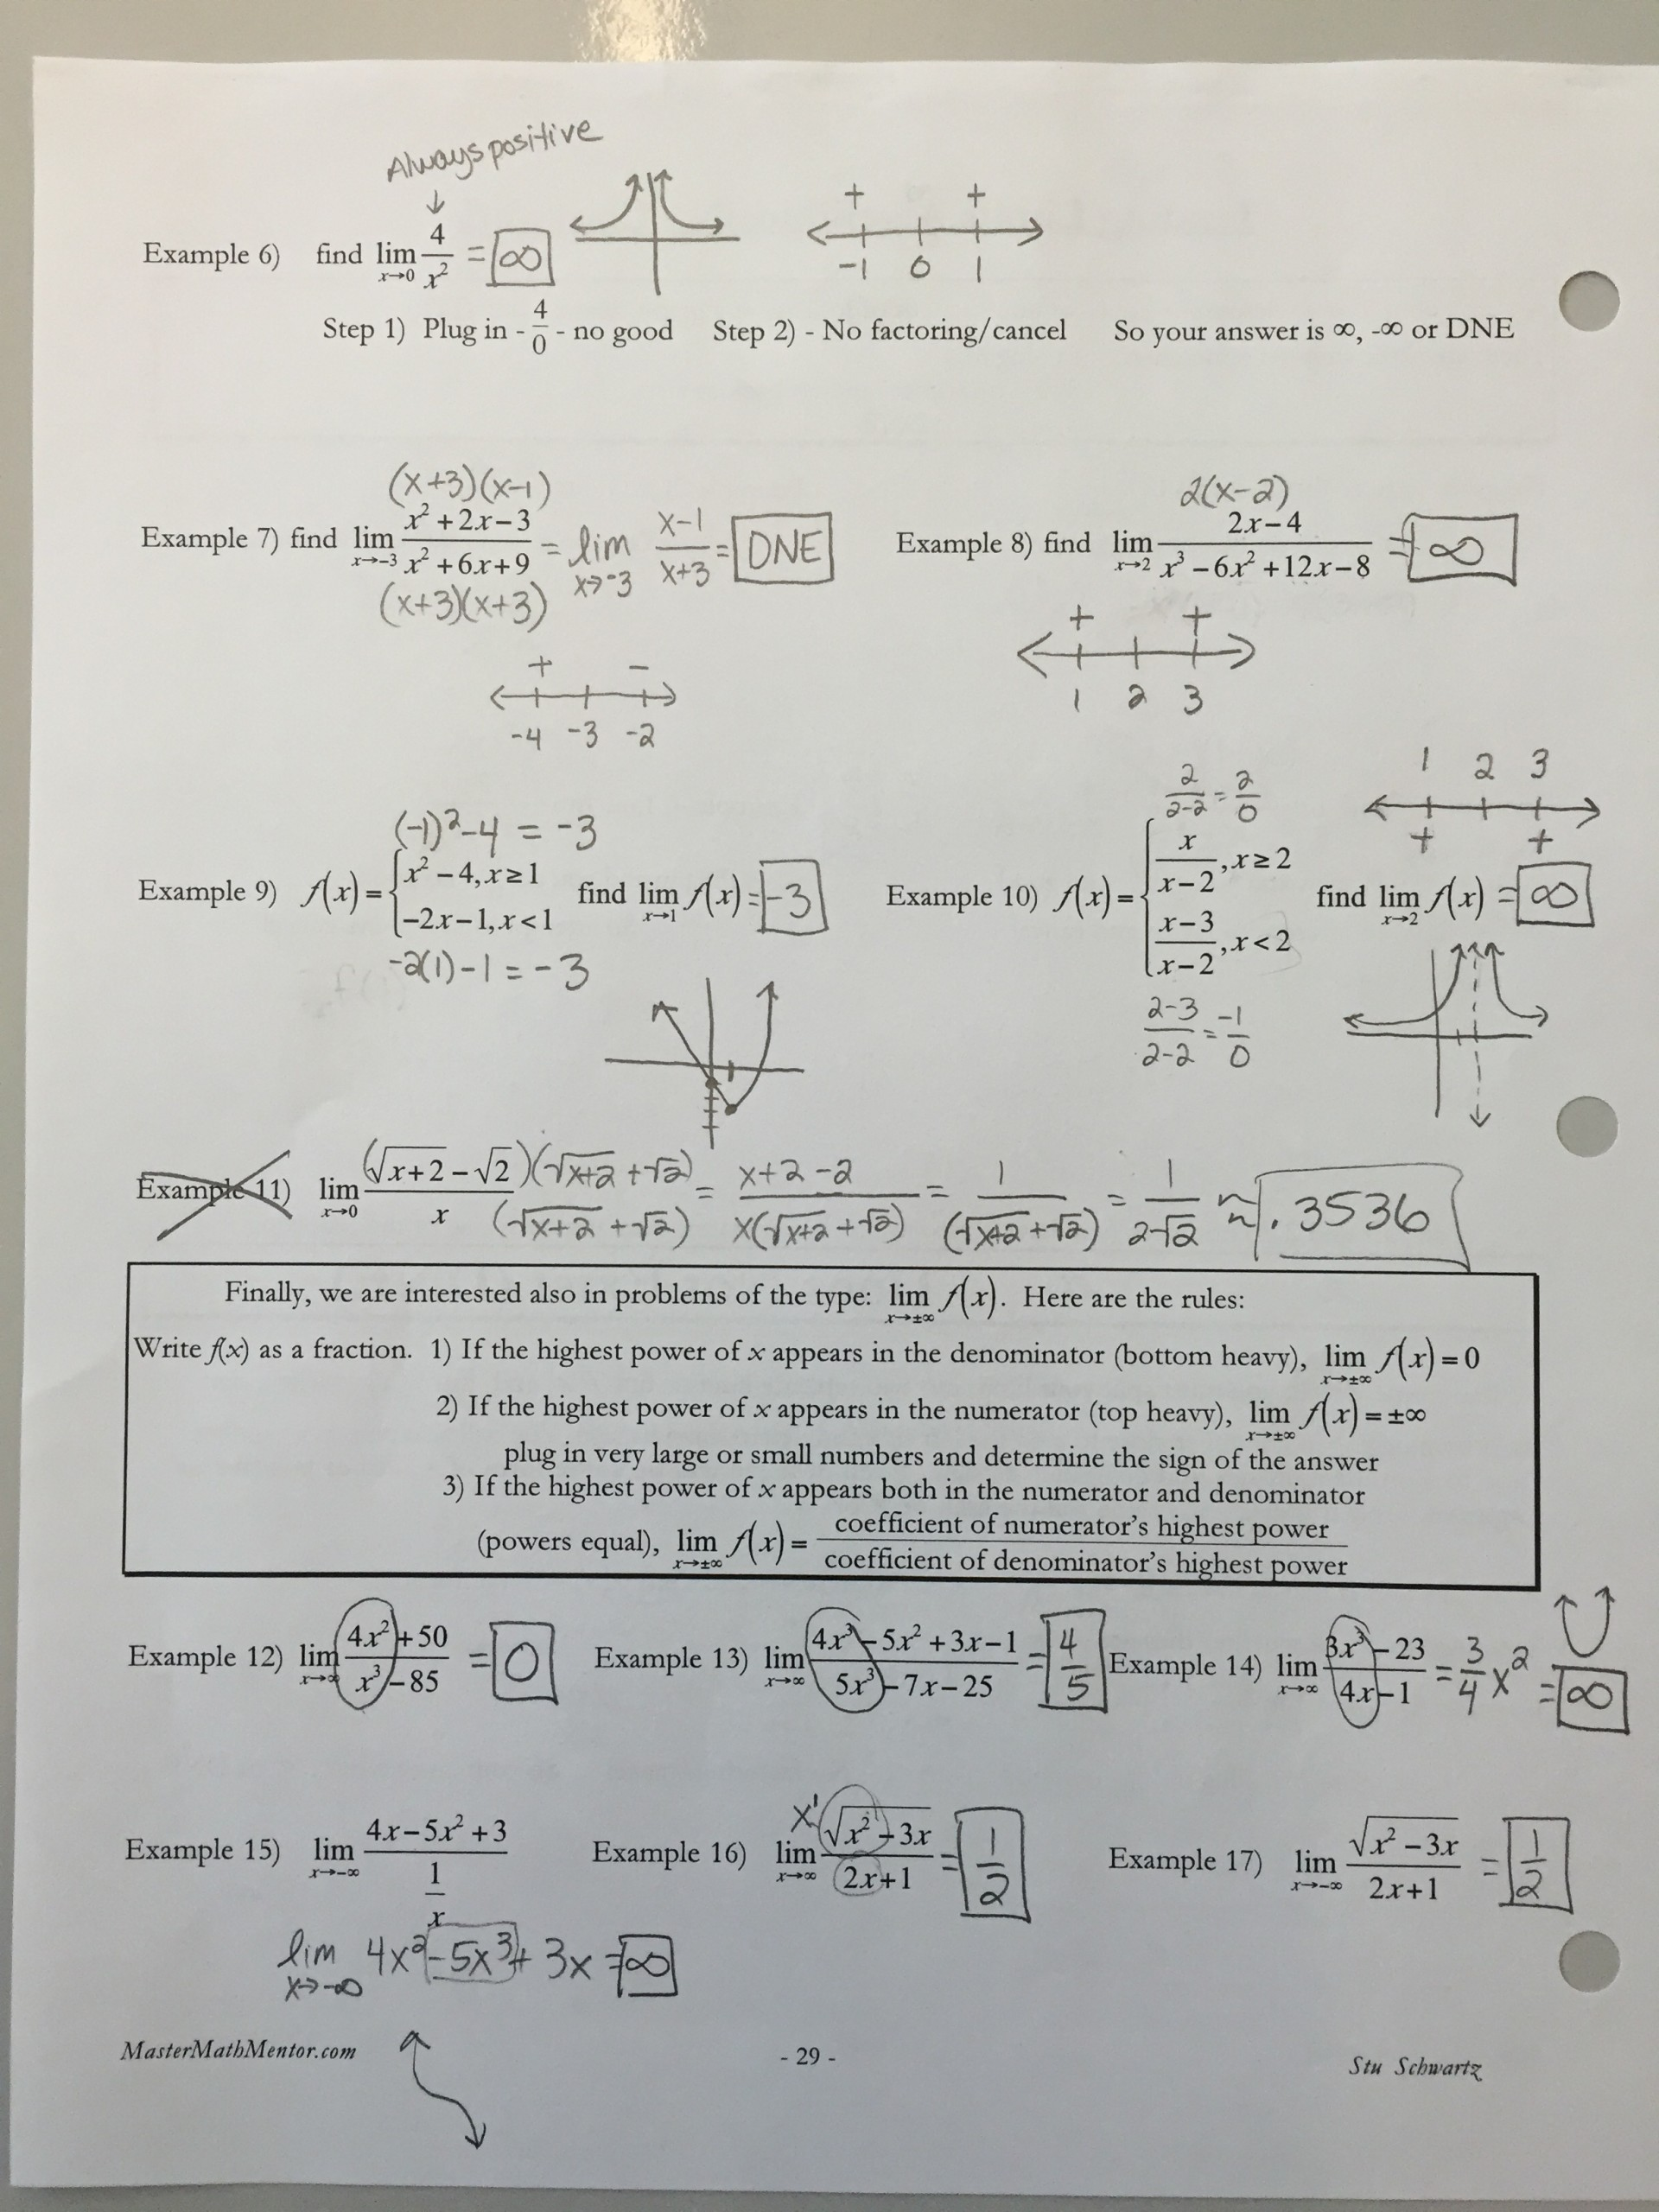 019 Essay Example Limits Algebraic Answers Page An On Sensational Criticism Lines 233 To 415 Part 3 Analysis Pdf 1920